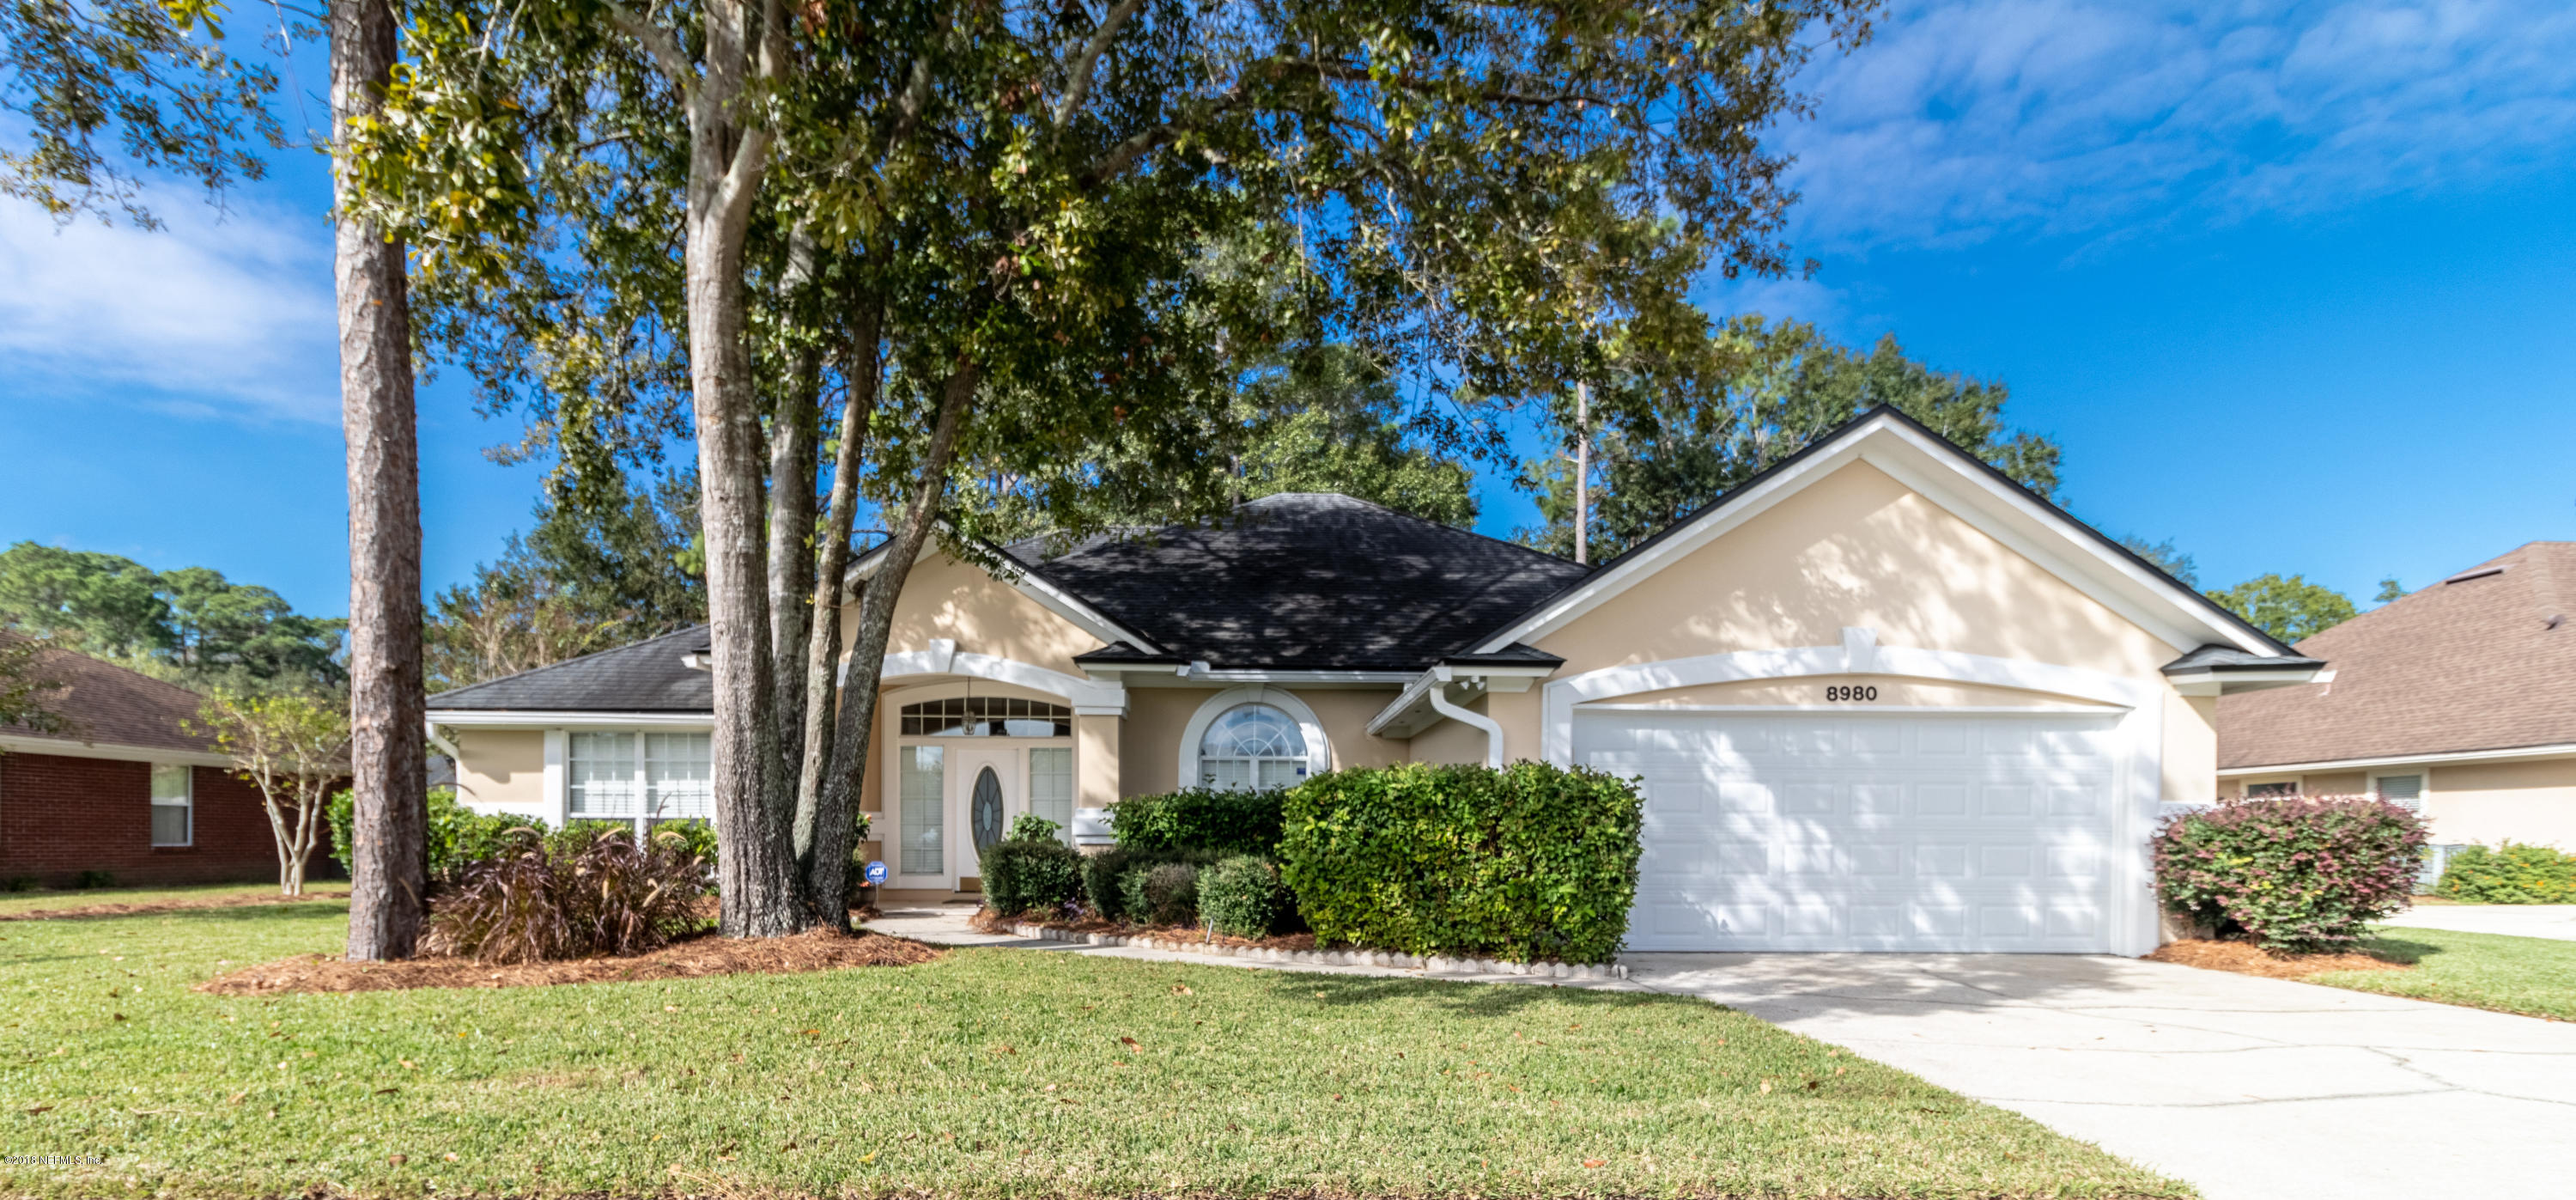 8980 ADAMS WALK, JACKSONVILLE, FLORIDA 32257, 4 Bedrooms Bedrooms, ,2 BathroomsBathrooms,Residential - single family,For sale,ADAMS WALK,965043